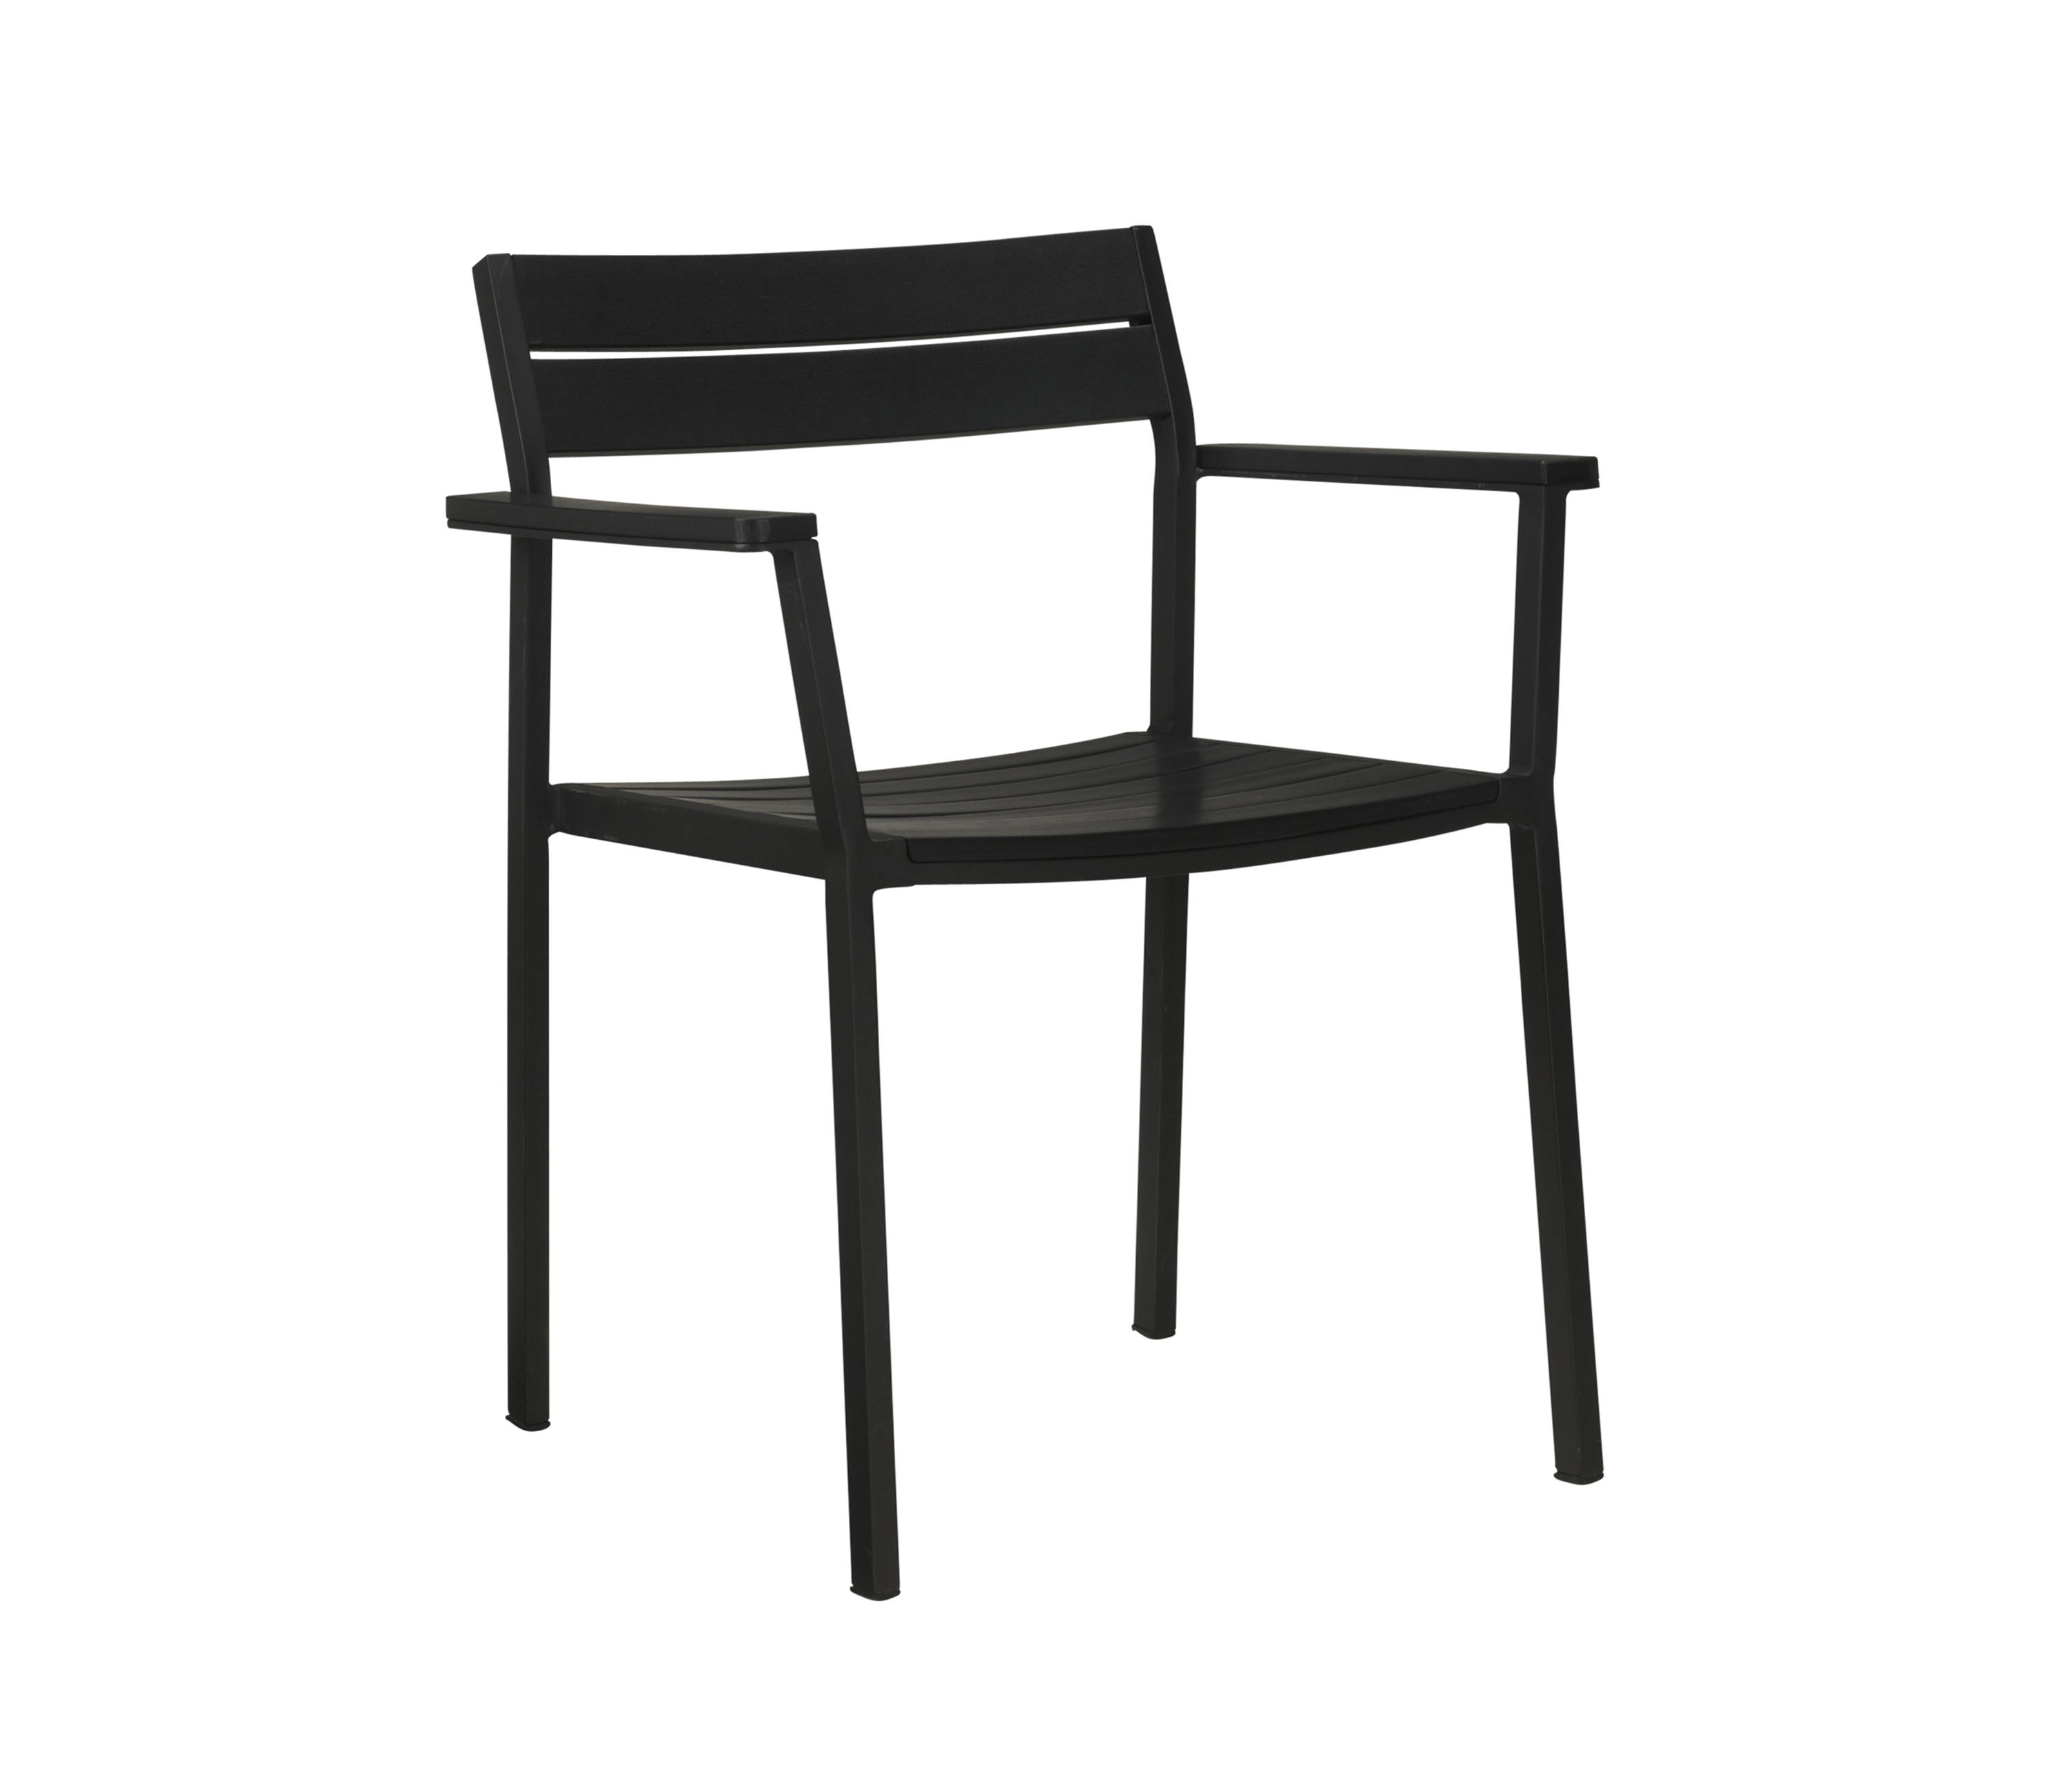 Eos Armchair By Case Furniture | Chairs ...